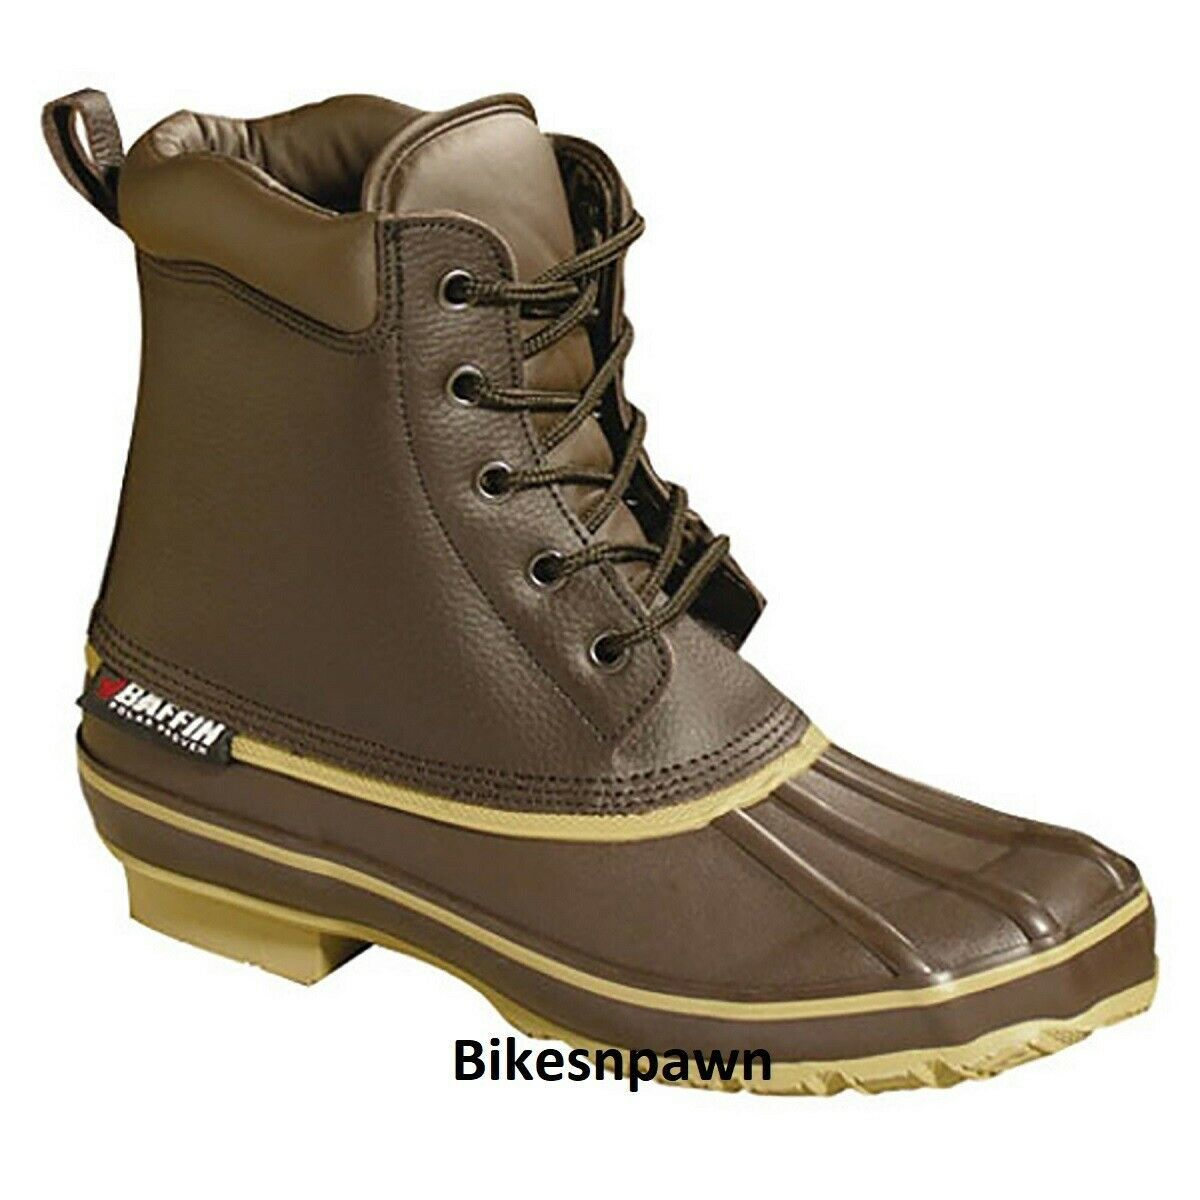 New Mens Size 7 Baffin Moose Waterproof All Season Boots Rated -0 F